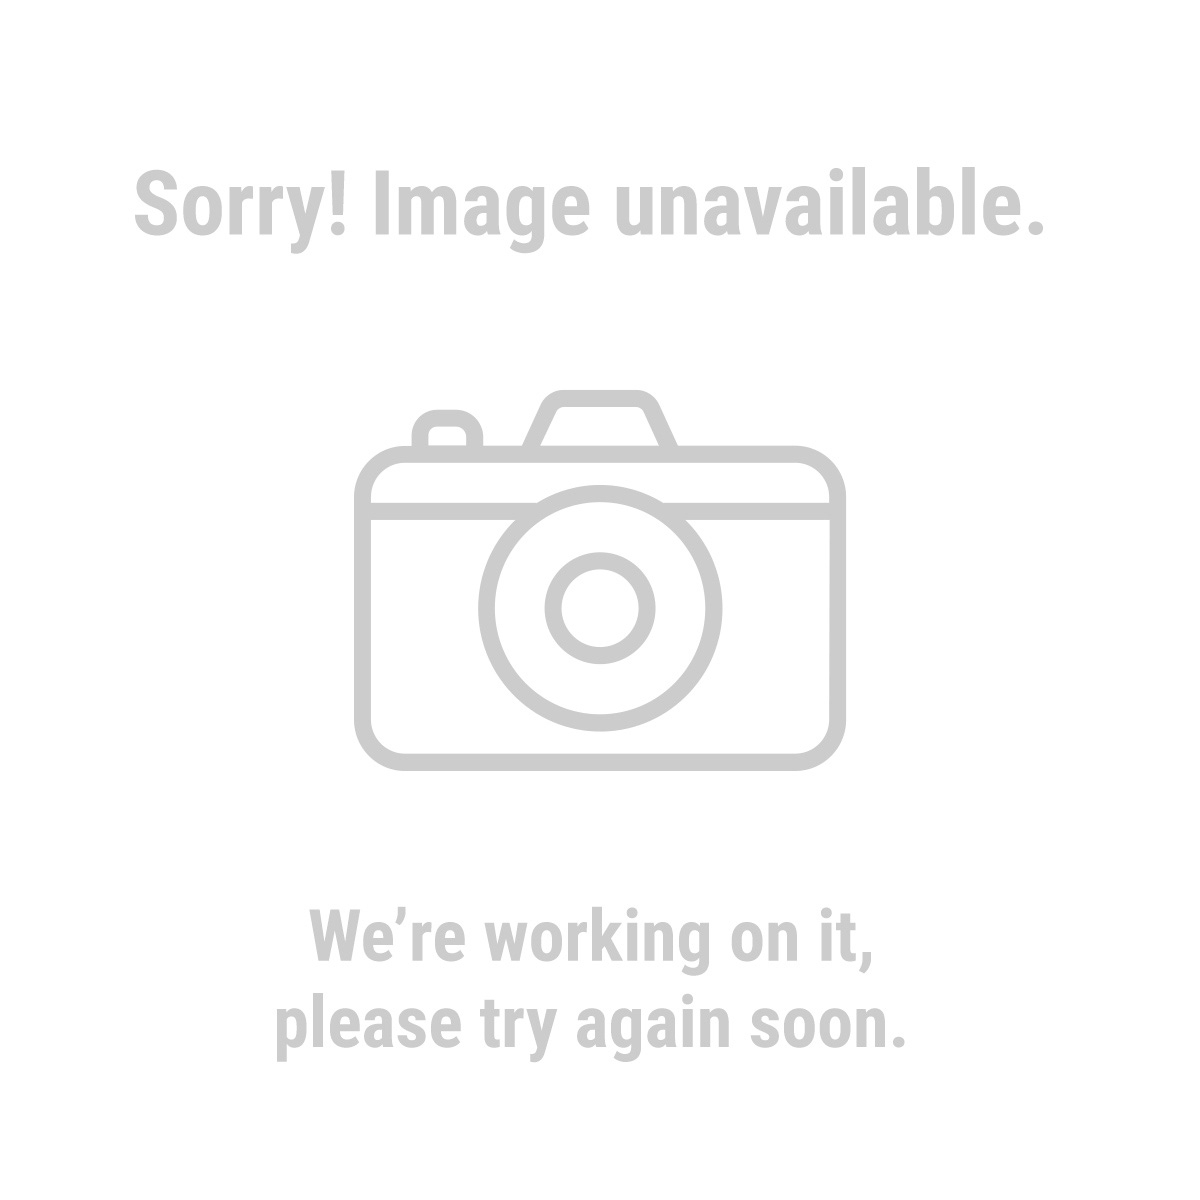 "Warrior 90336 Pack of 5, 24 grit 7"" Industrial Aluminum oxide Grinding Wheels for Metal"